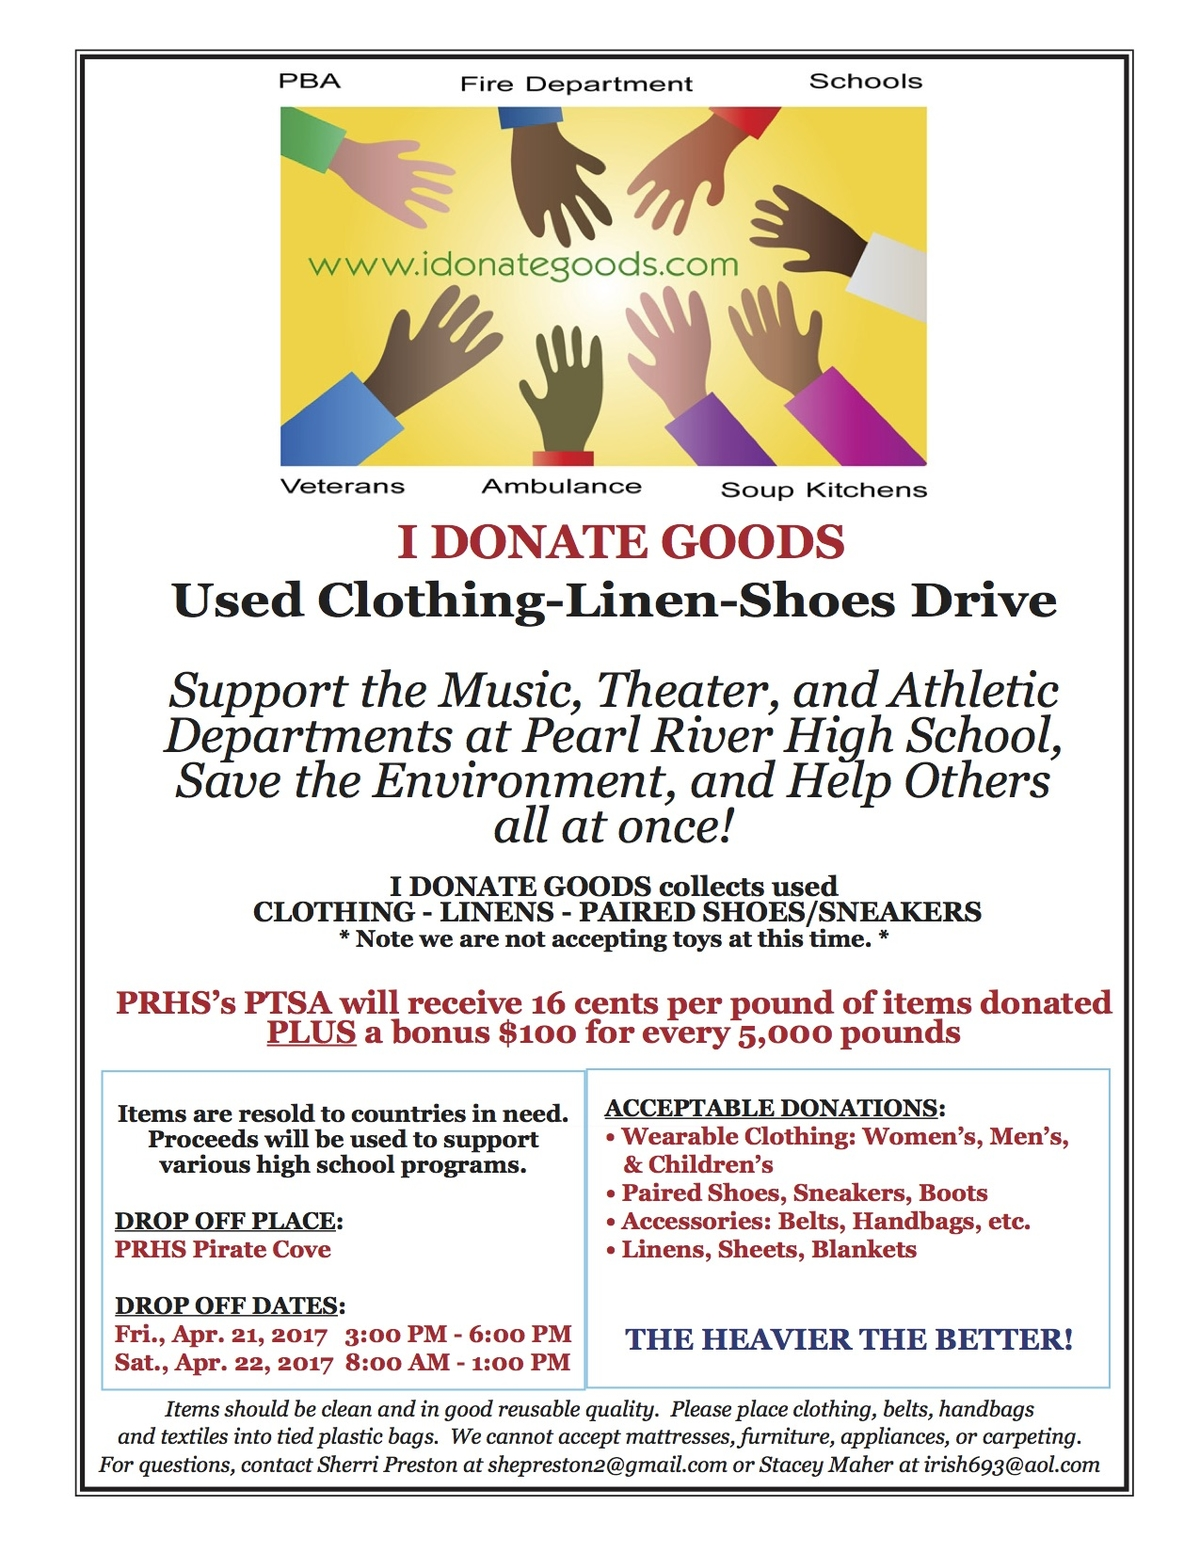 prhs partners with i donate goods to hold clothing drive pearl river ny patch. Black Bedroom Furniture Sets. Home Design Ideas